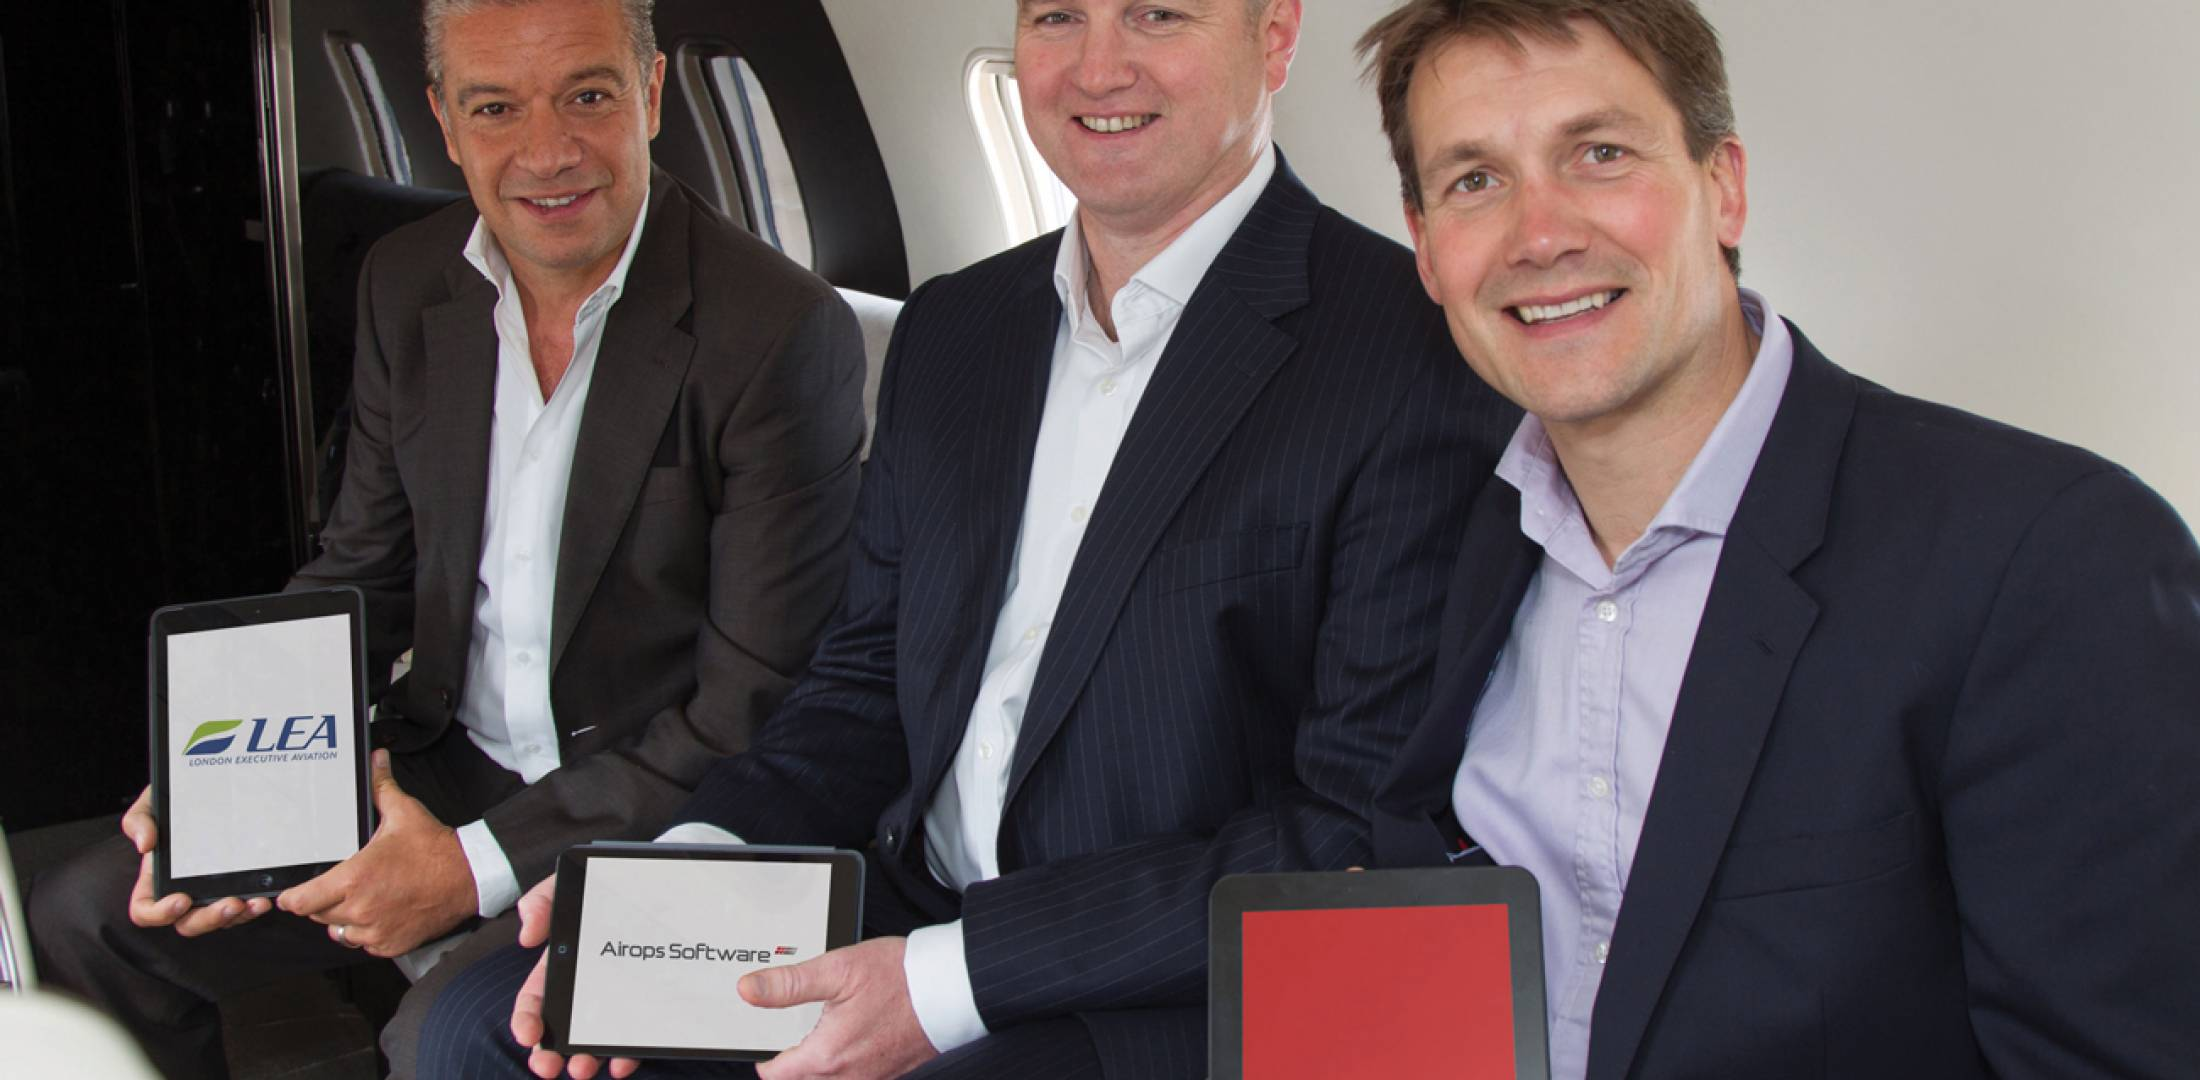 L to r: George Galanopoulos, managing director of London Executive Aviation, an Airops user; with Daniel Tee, managing director of Airops; and PrivateFly CEO Adam Twidell, celebrate the cooperation between Airops and PrivateFly.